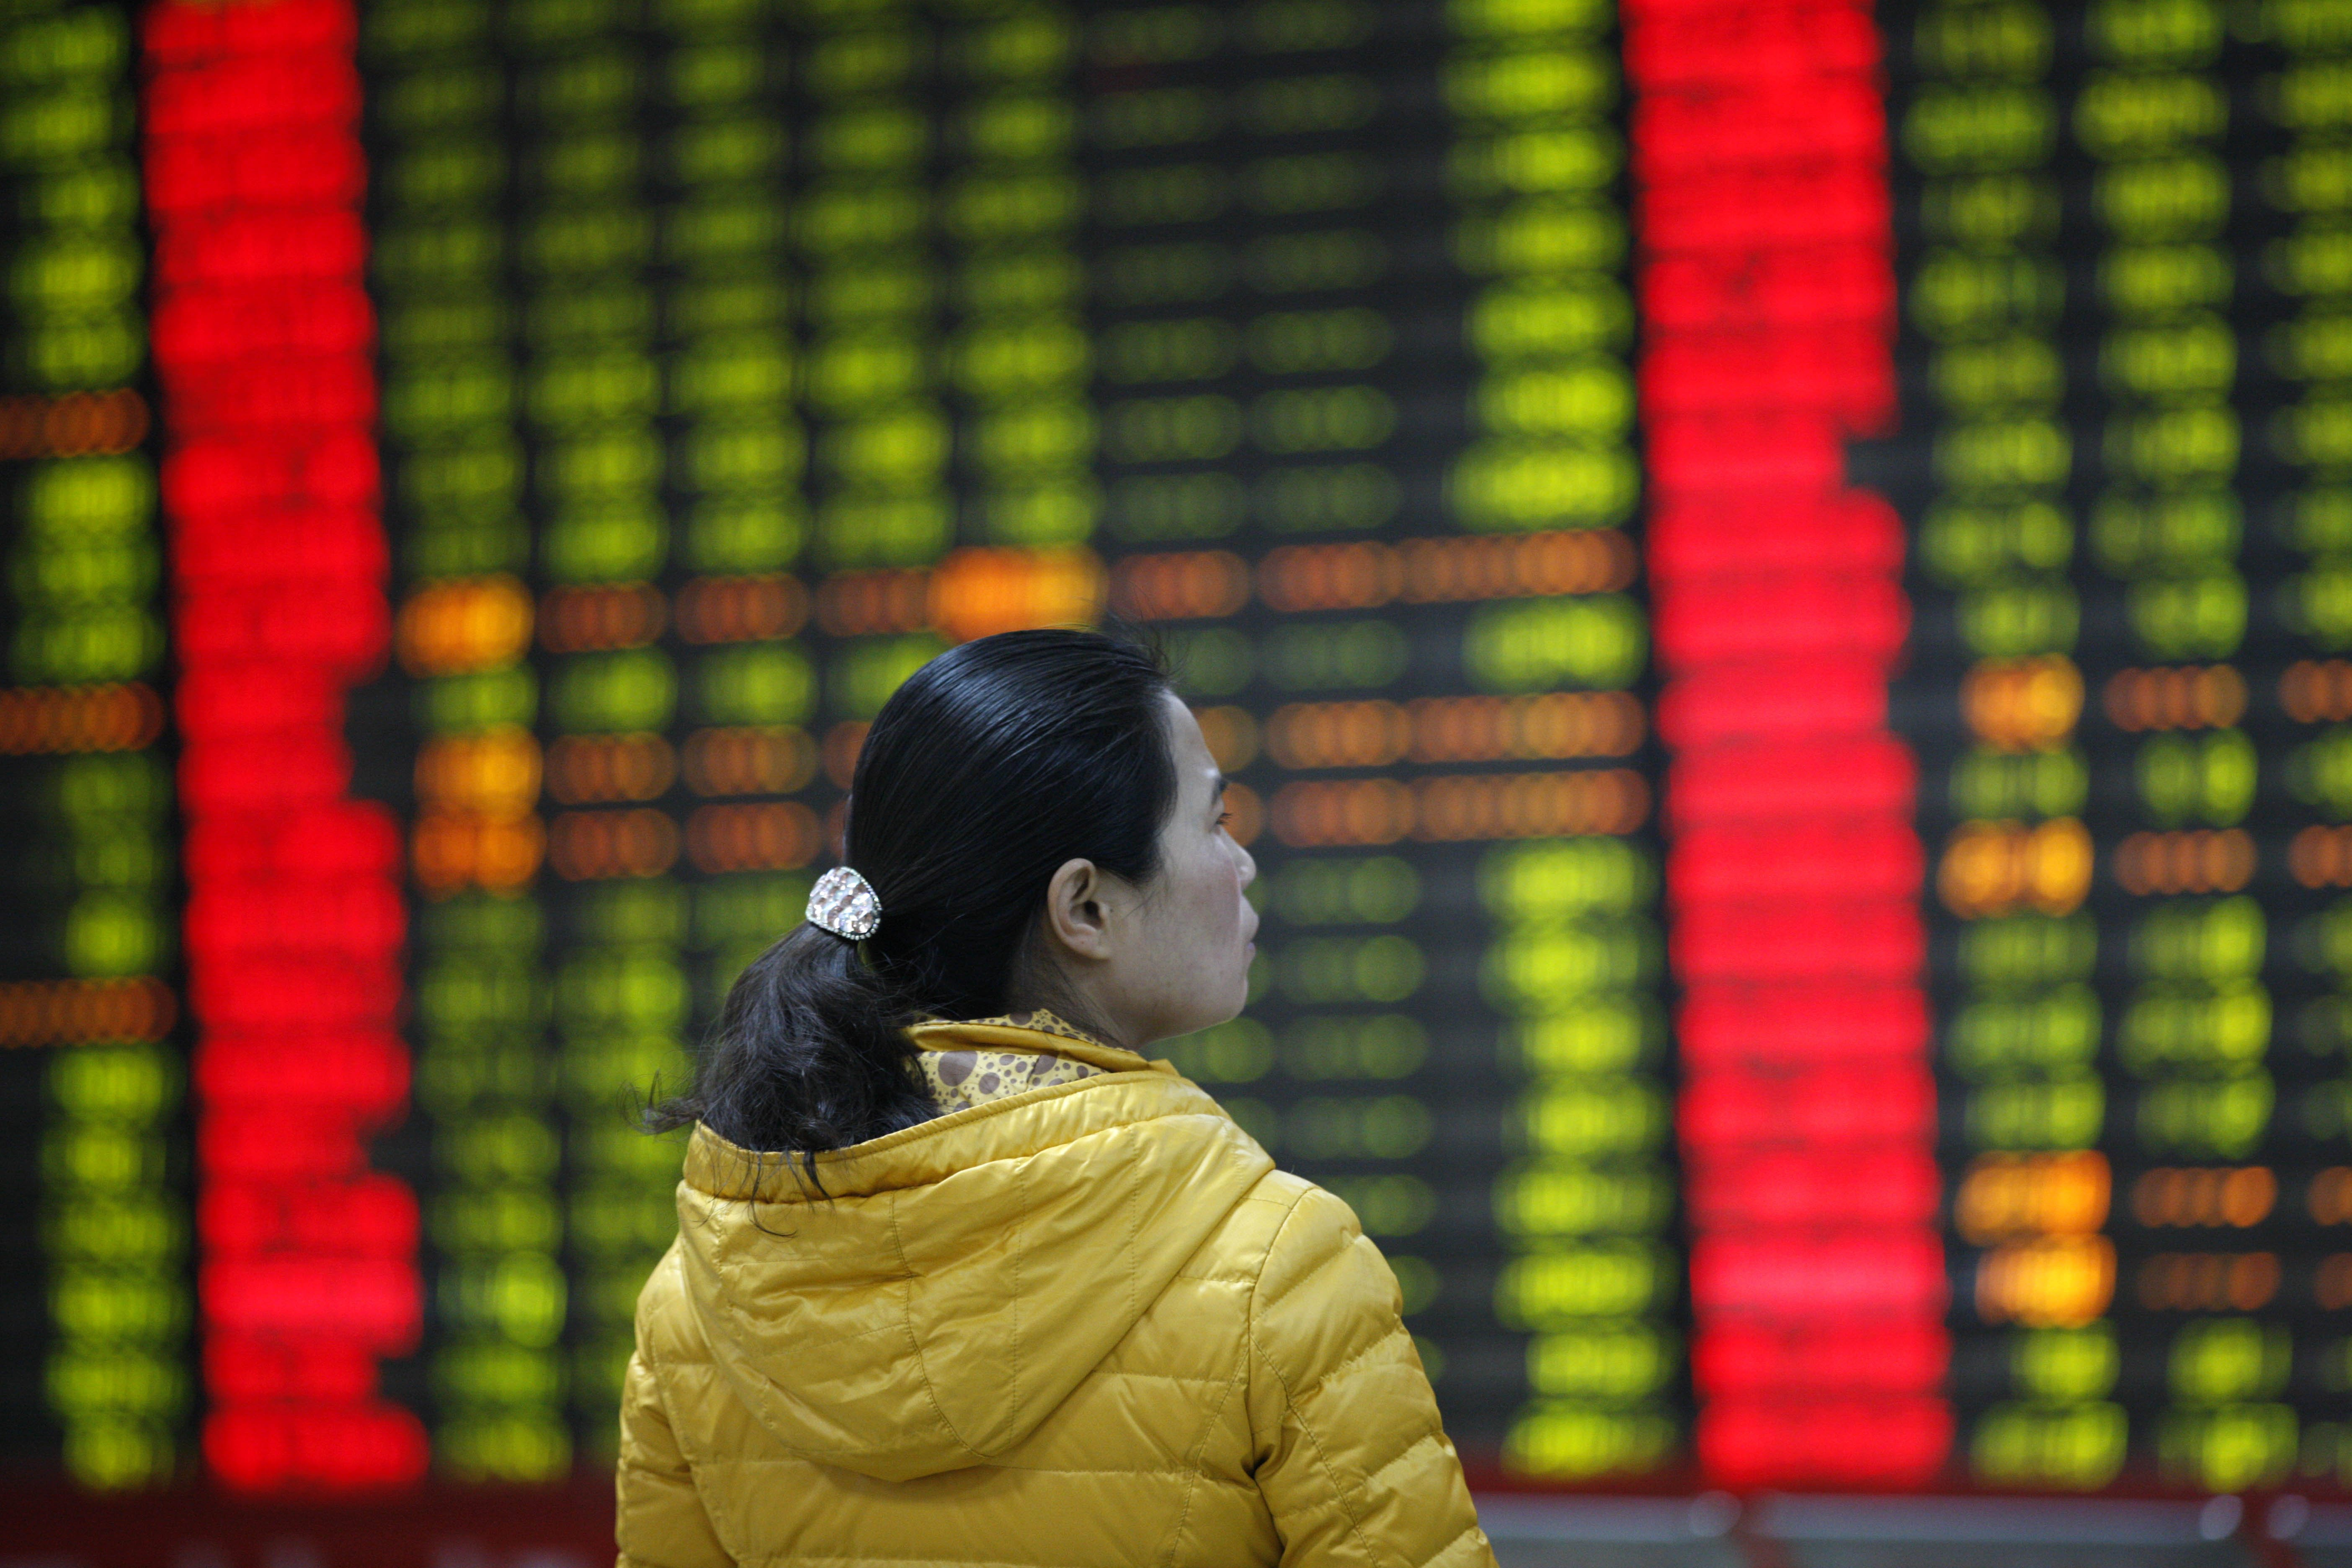 An investor watches electric boards in a stock market in Huaibei, Anhui province, east China on Jan. 7, 2016.